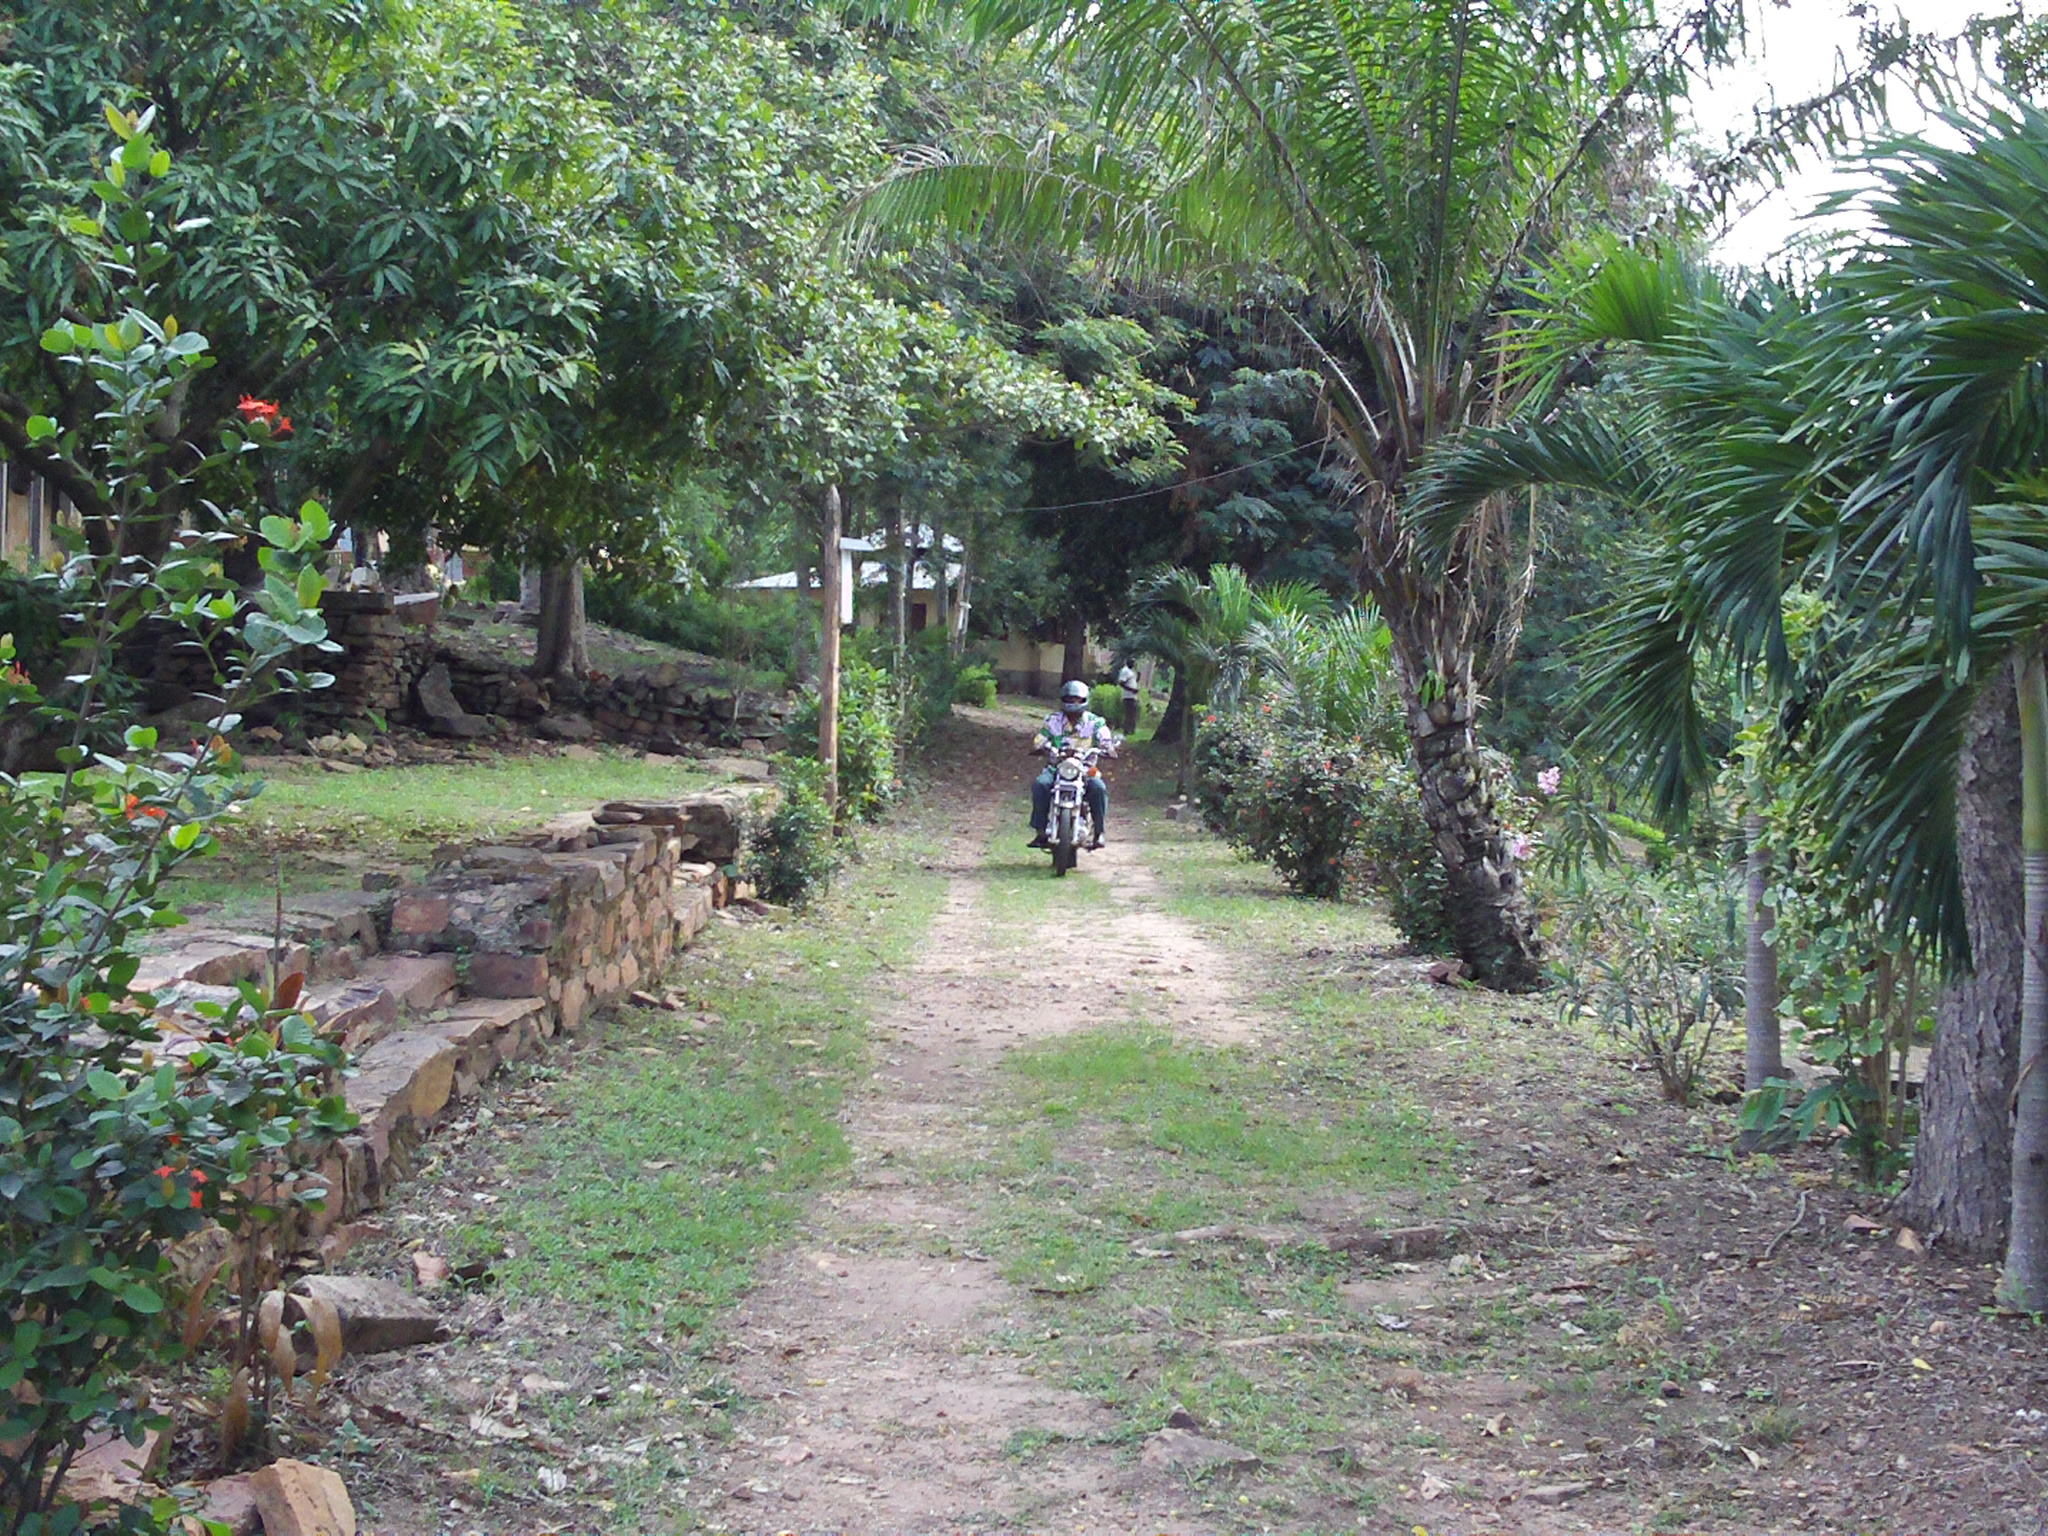 A road in the Togolese city of Atakpame leads to the hilltop seminary, which was constructed after World War I with the help of French missionaries.